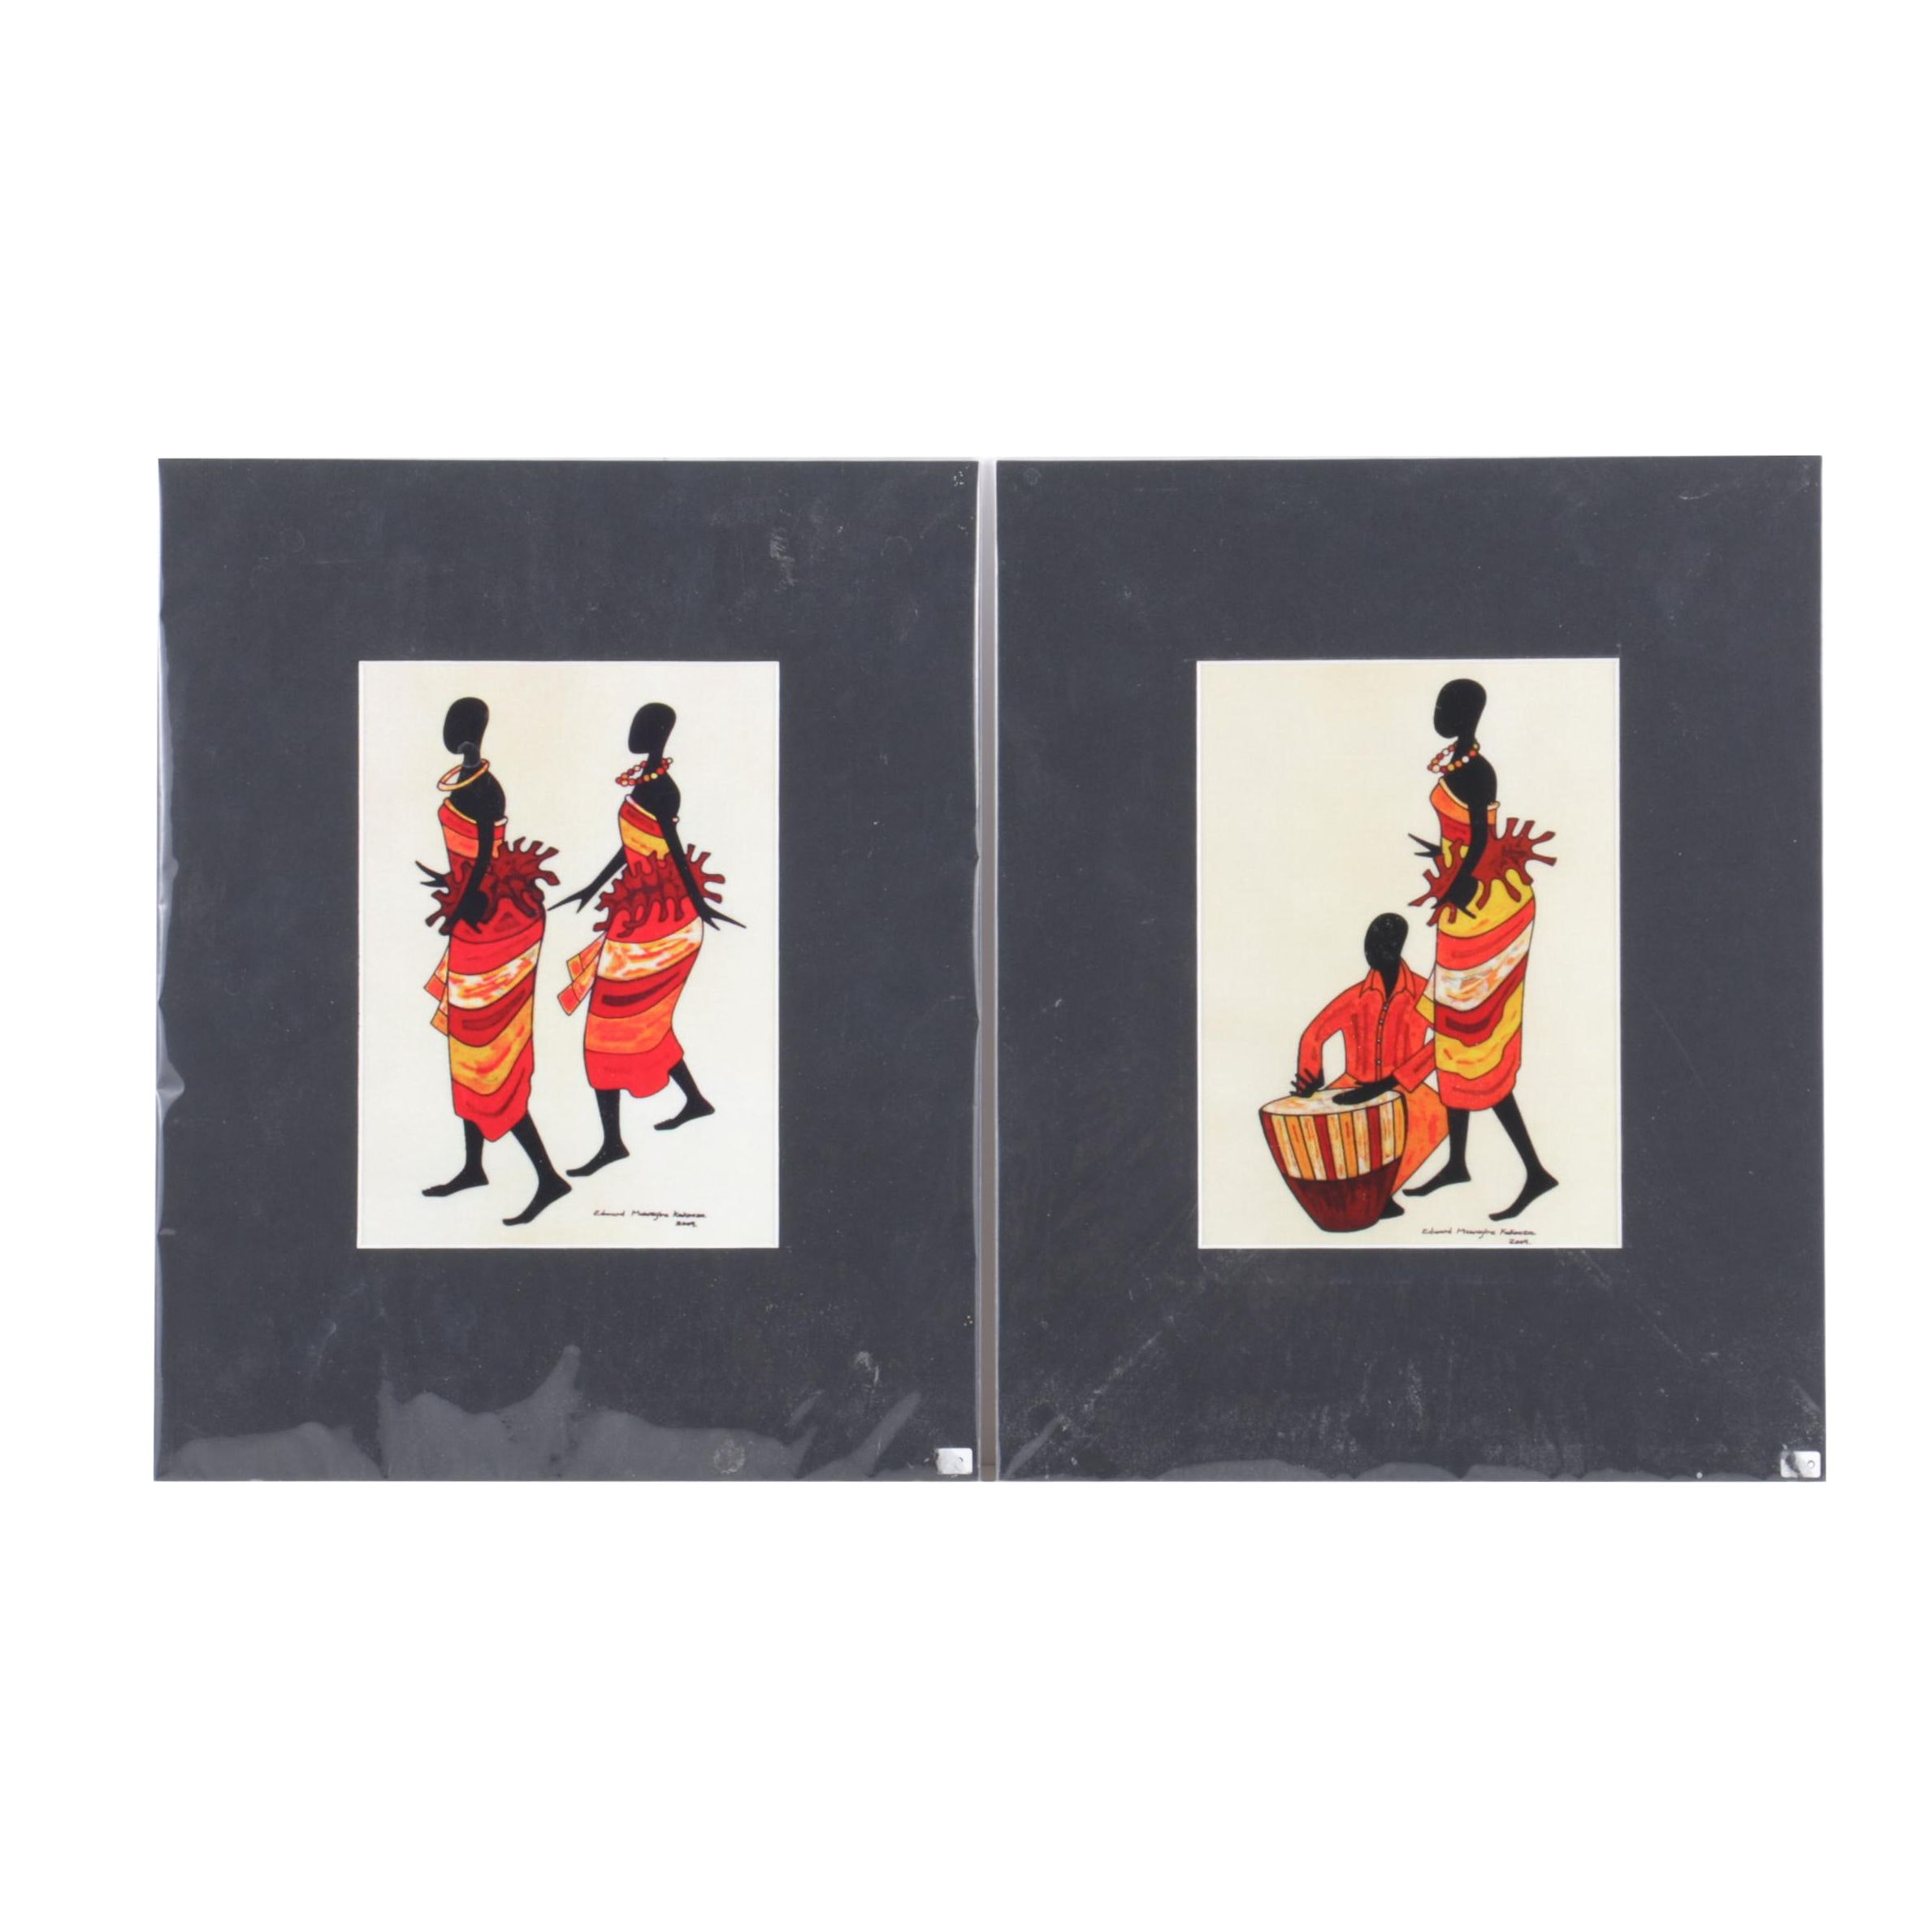 Pair of Reproduction Prints After Edward Kakooza